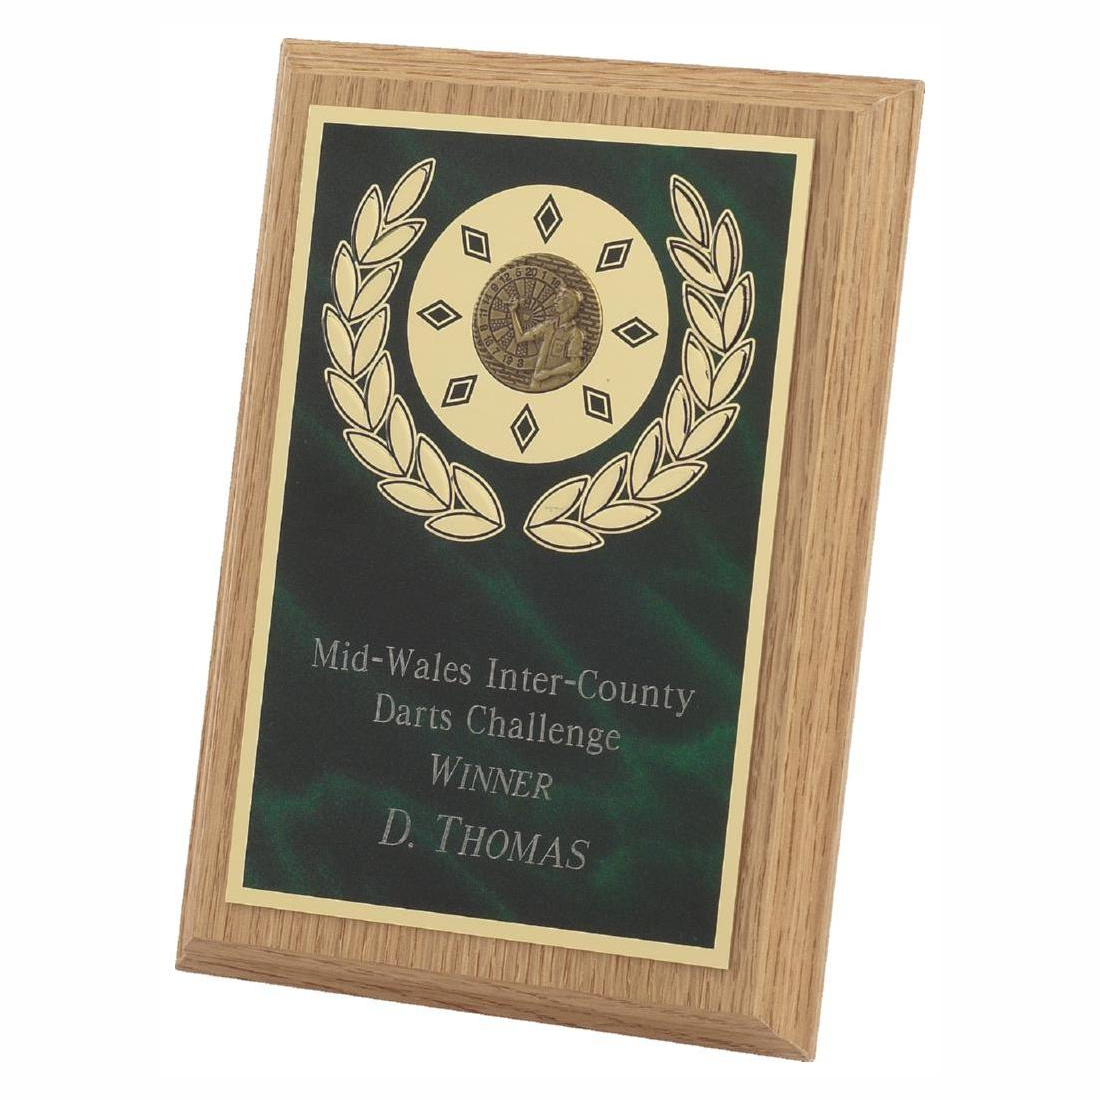 Lightwood Presentation Plaque 18cms made from a MDF based material with a light wood colour finish and a sturdy strut on the rear. Incorporating green marble effect brass base metal front.